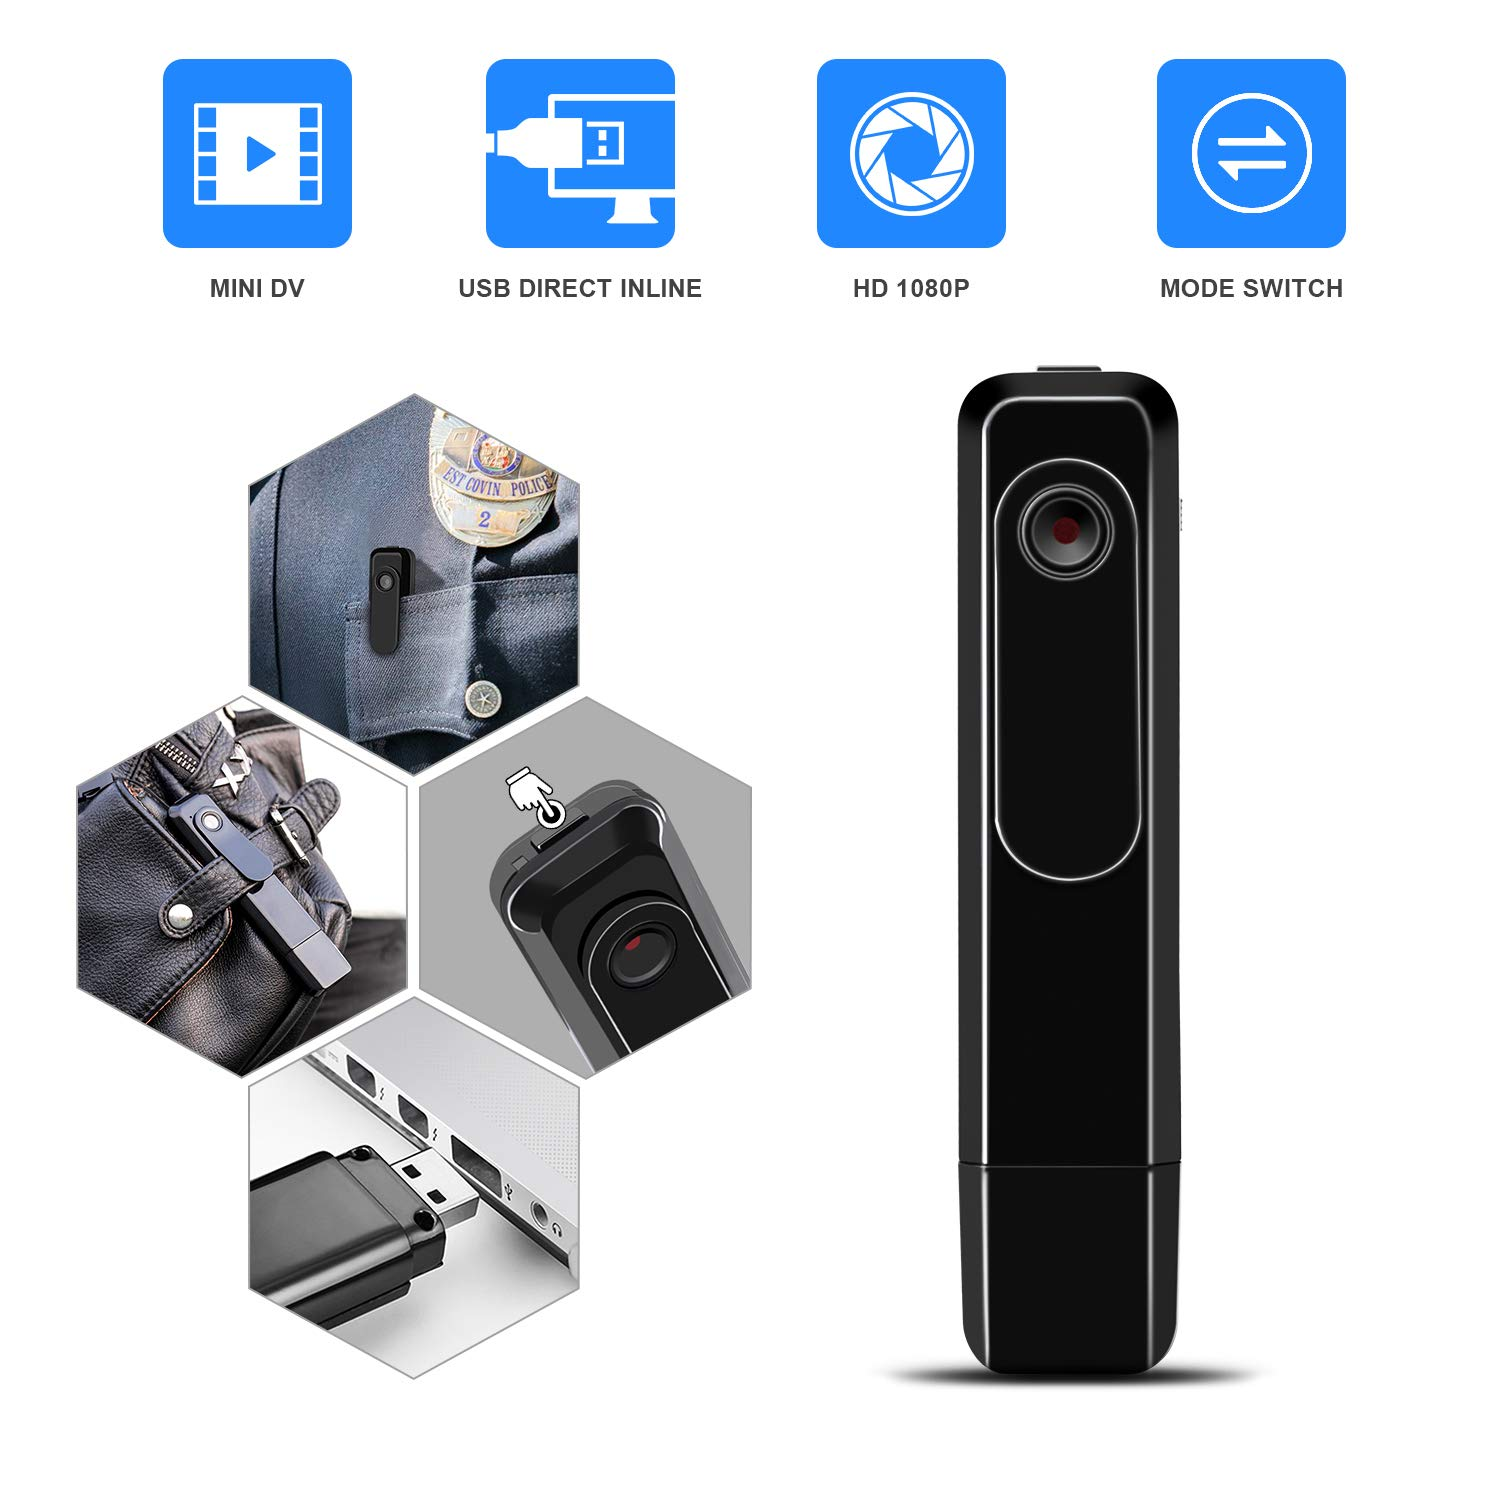 Mini Body Camera with USB Port DZFtech Body Spy Cam HD 1080P Wireless Portable Hidden Spy Pen Body Cameras Wearable Video Recorder with Clip Body Camera Easy to Record for Home/Office by DZFtech